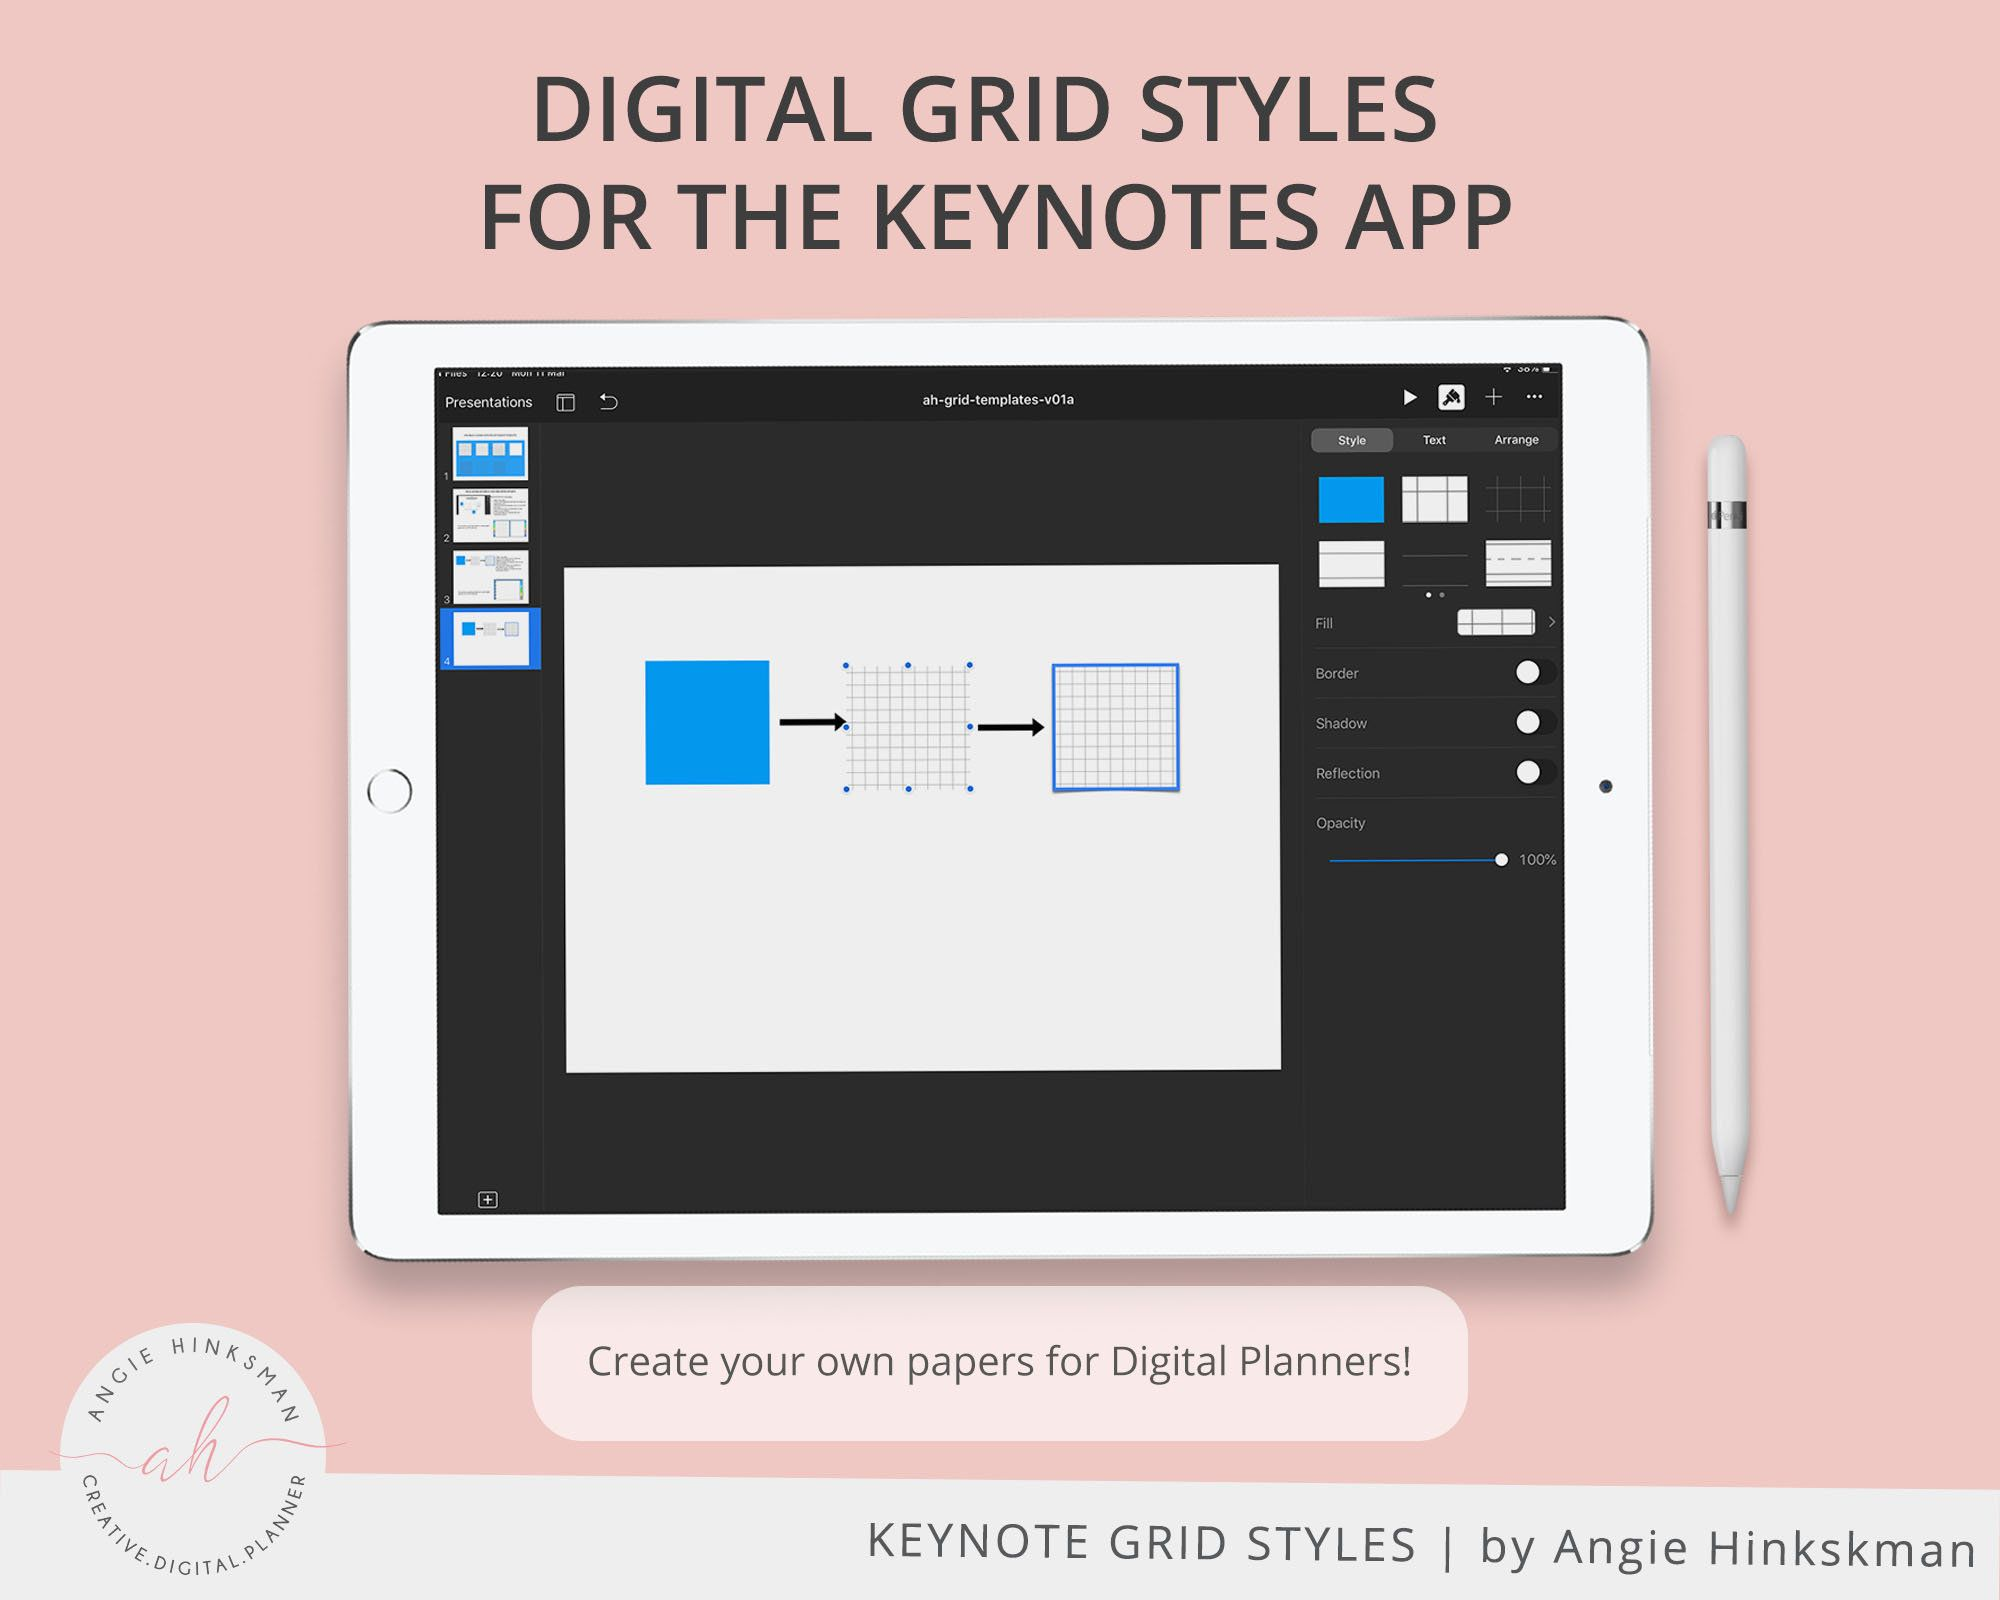 photo regarding Digital Planners and Organizers named Electronic Paper Grid Versions for Keynotes Electronic Planners